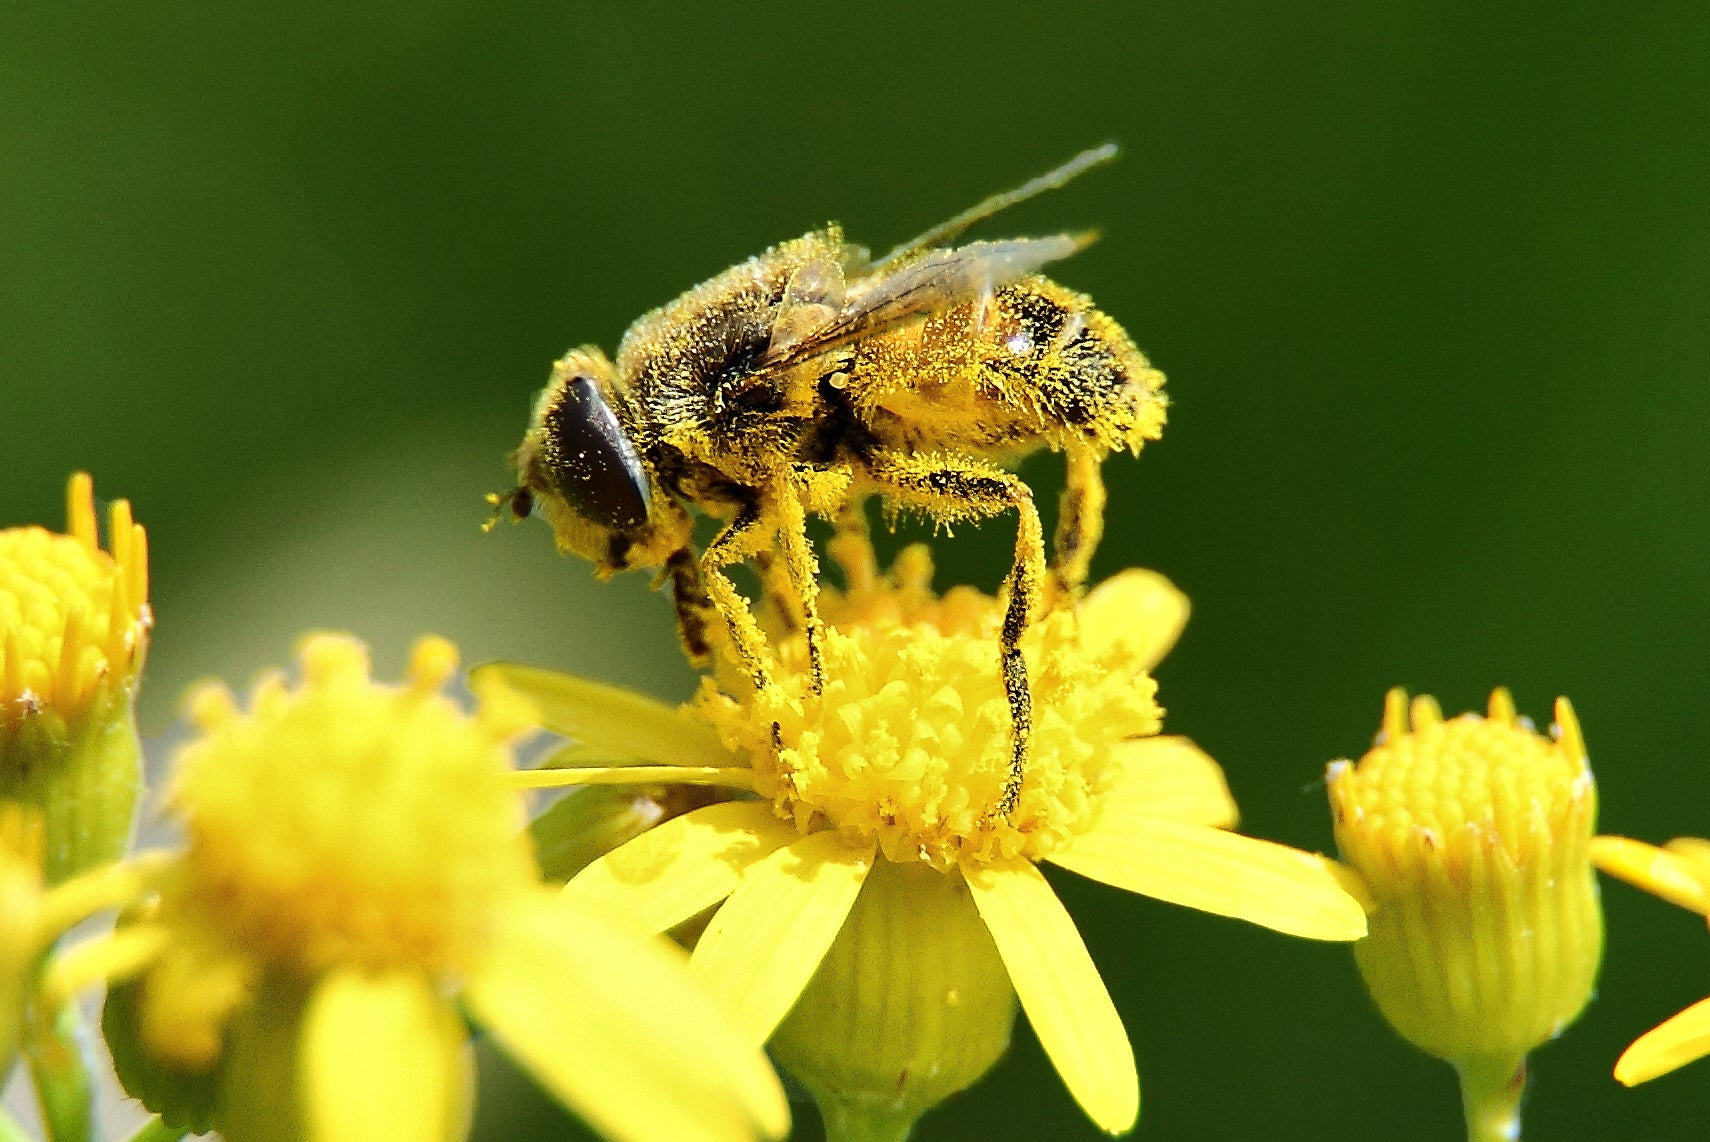 Plan 'Bee': As Honeybee Populations Dwindle, Other Species Could Come To The Rescue